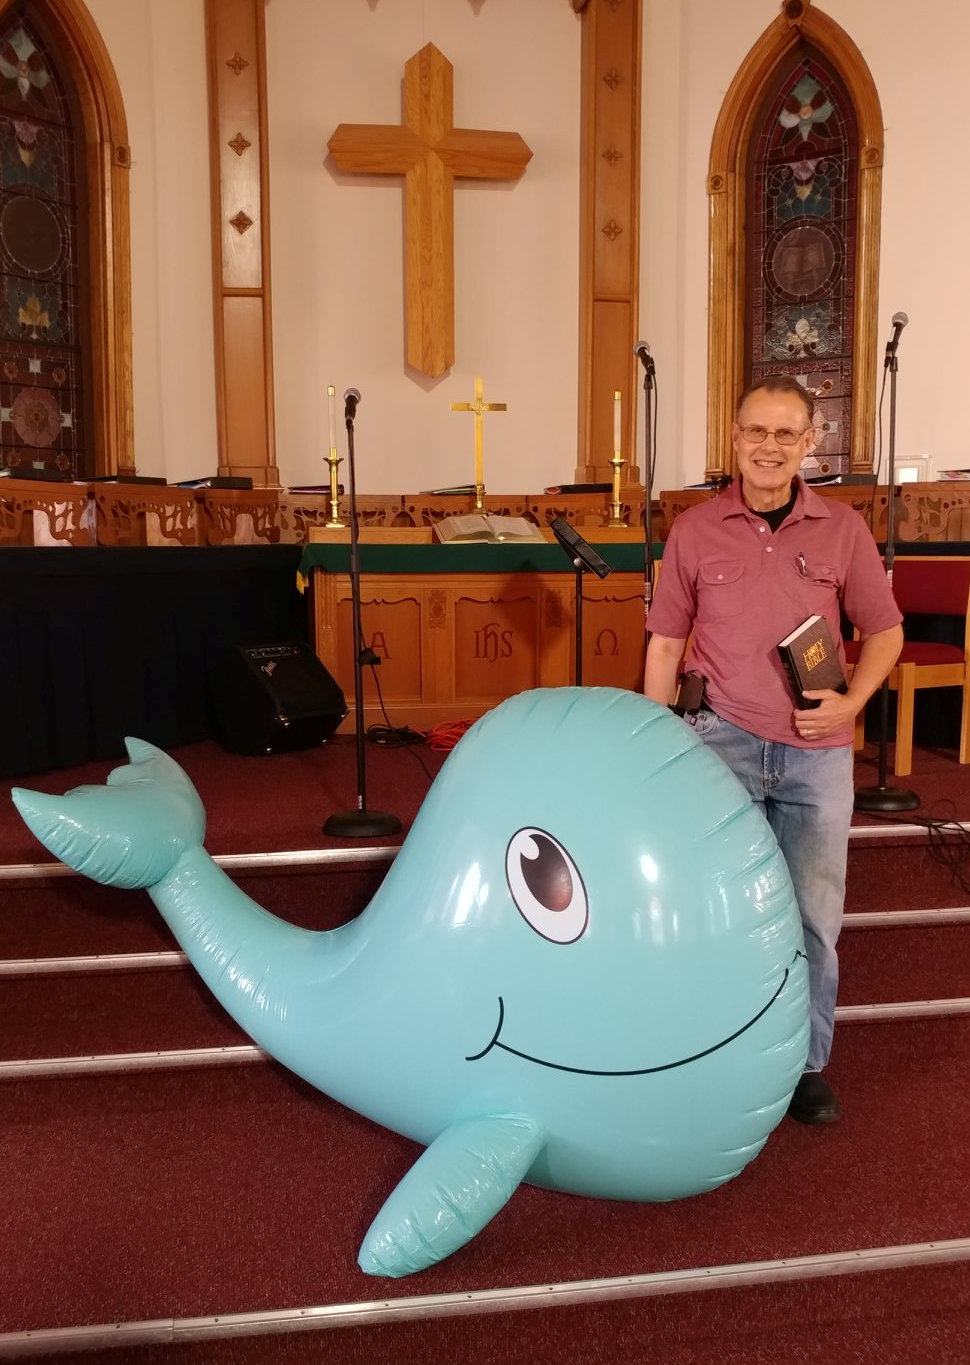 Pastor with whale